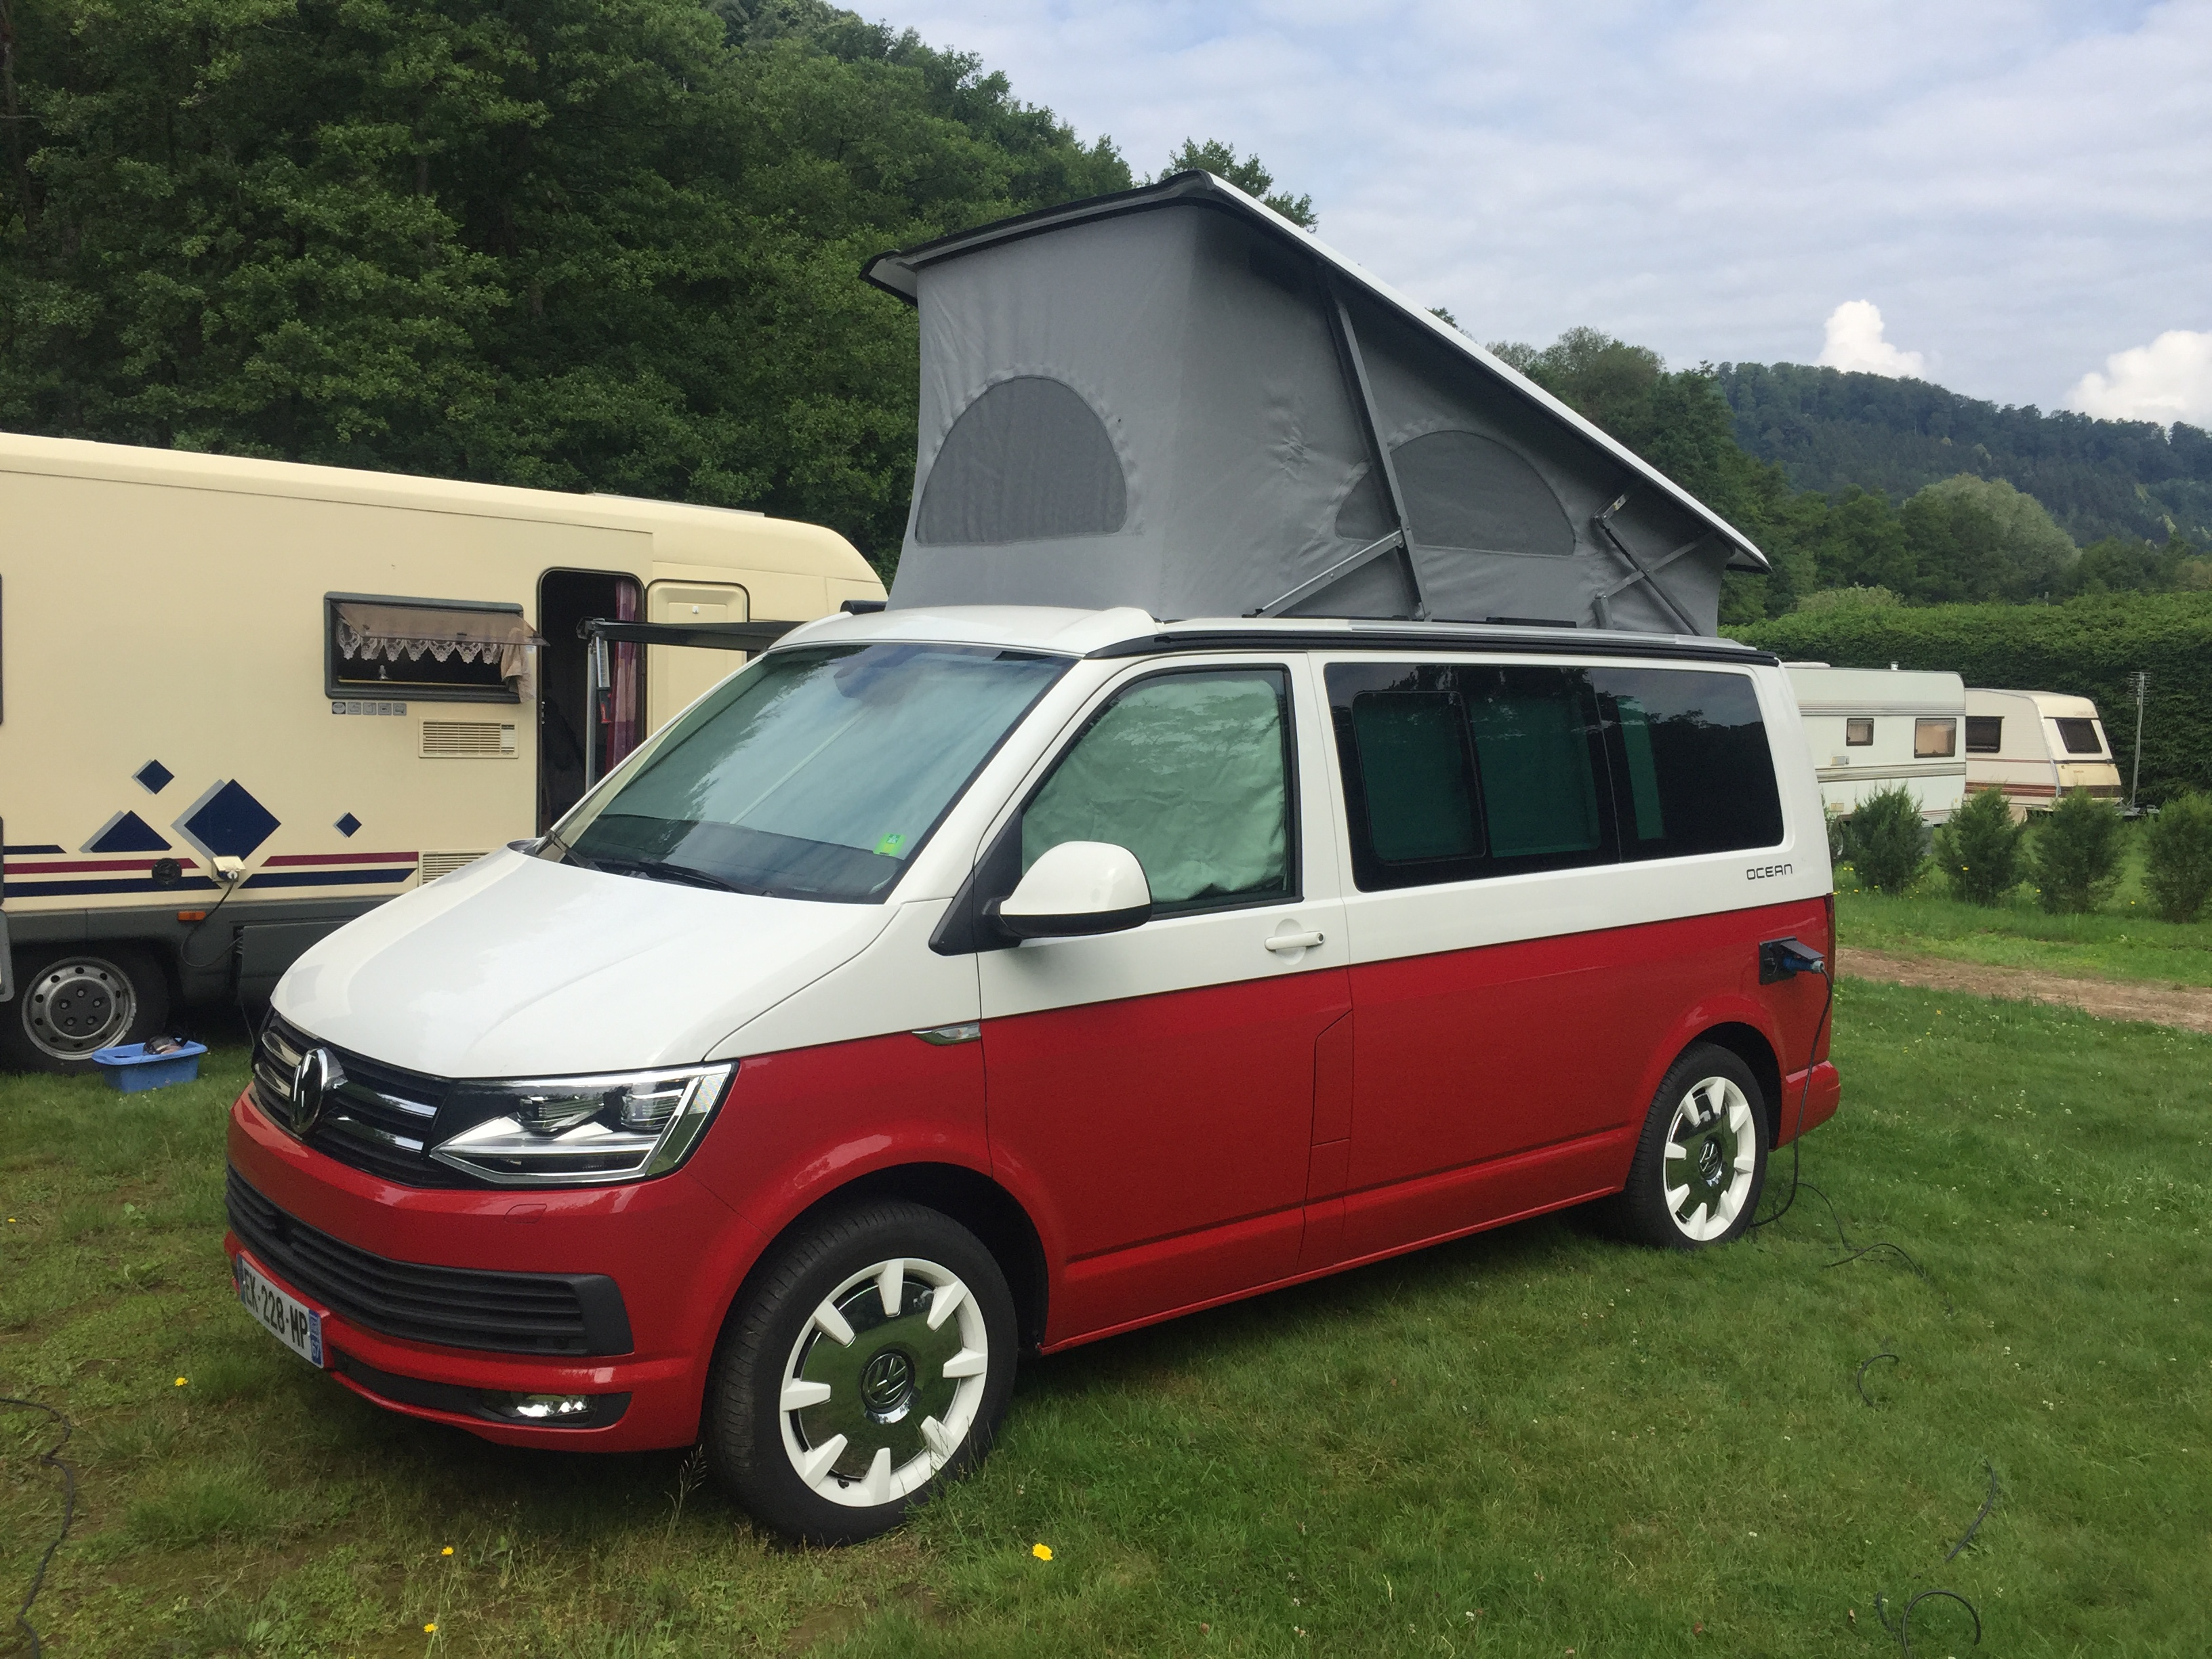 volkswagen california ocean occasion de 2017 vw camping car en vente strasbourg rhin 67. Black Bedroom Furniture Sets. Home Design Ideas